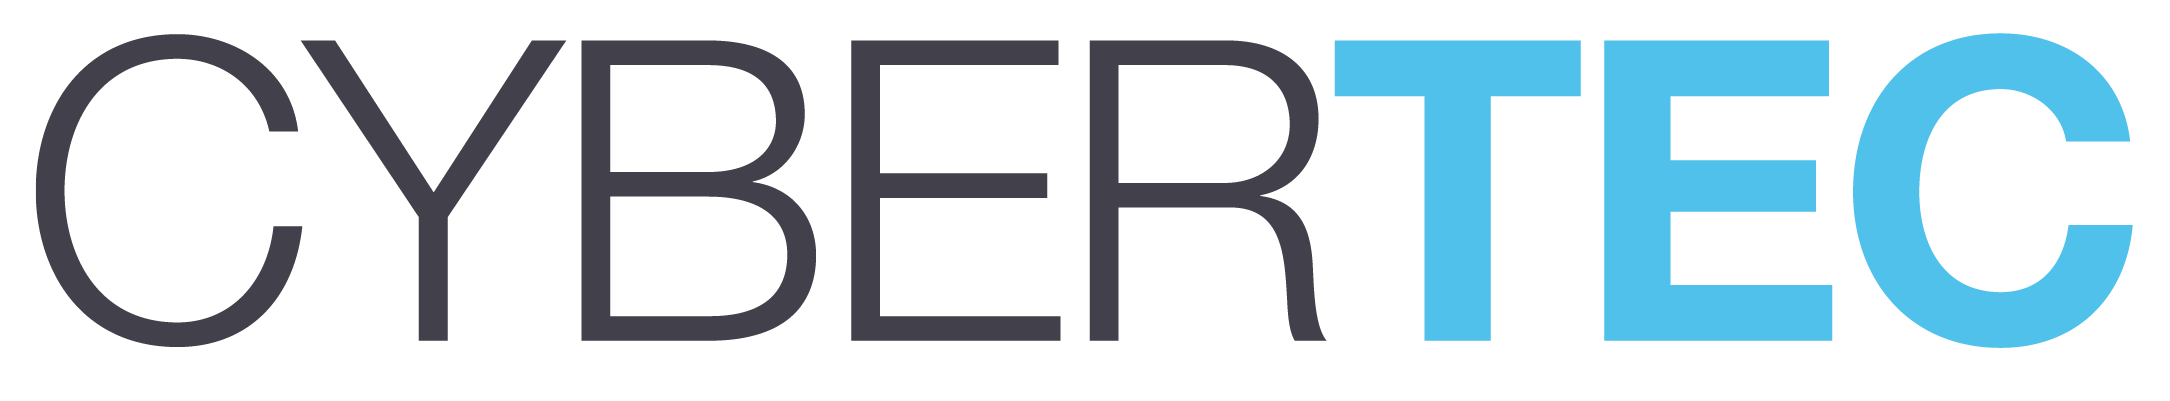 Cybertec Logo Nameonly 01